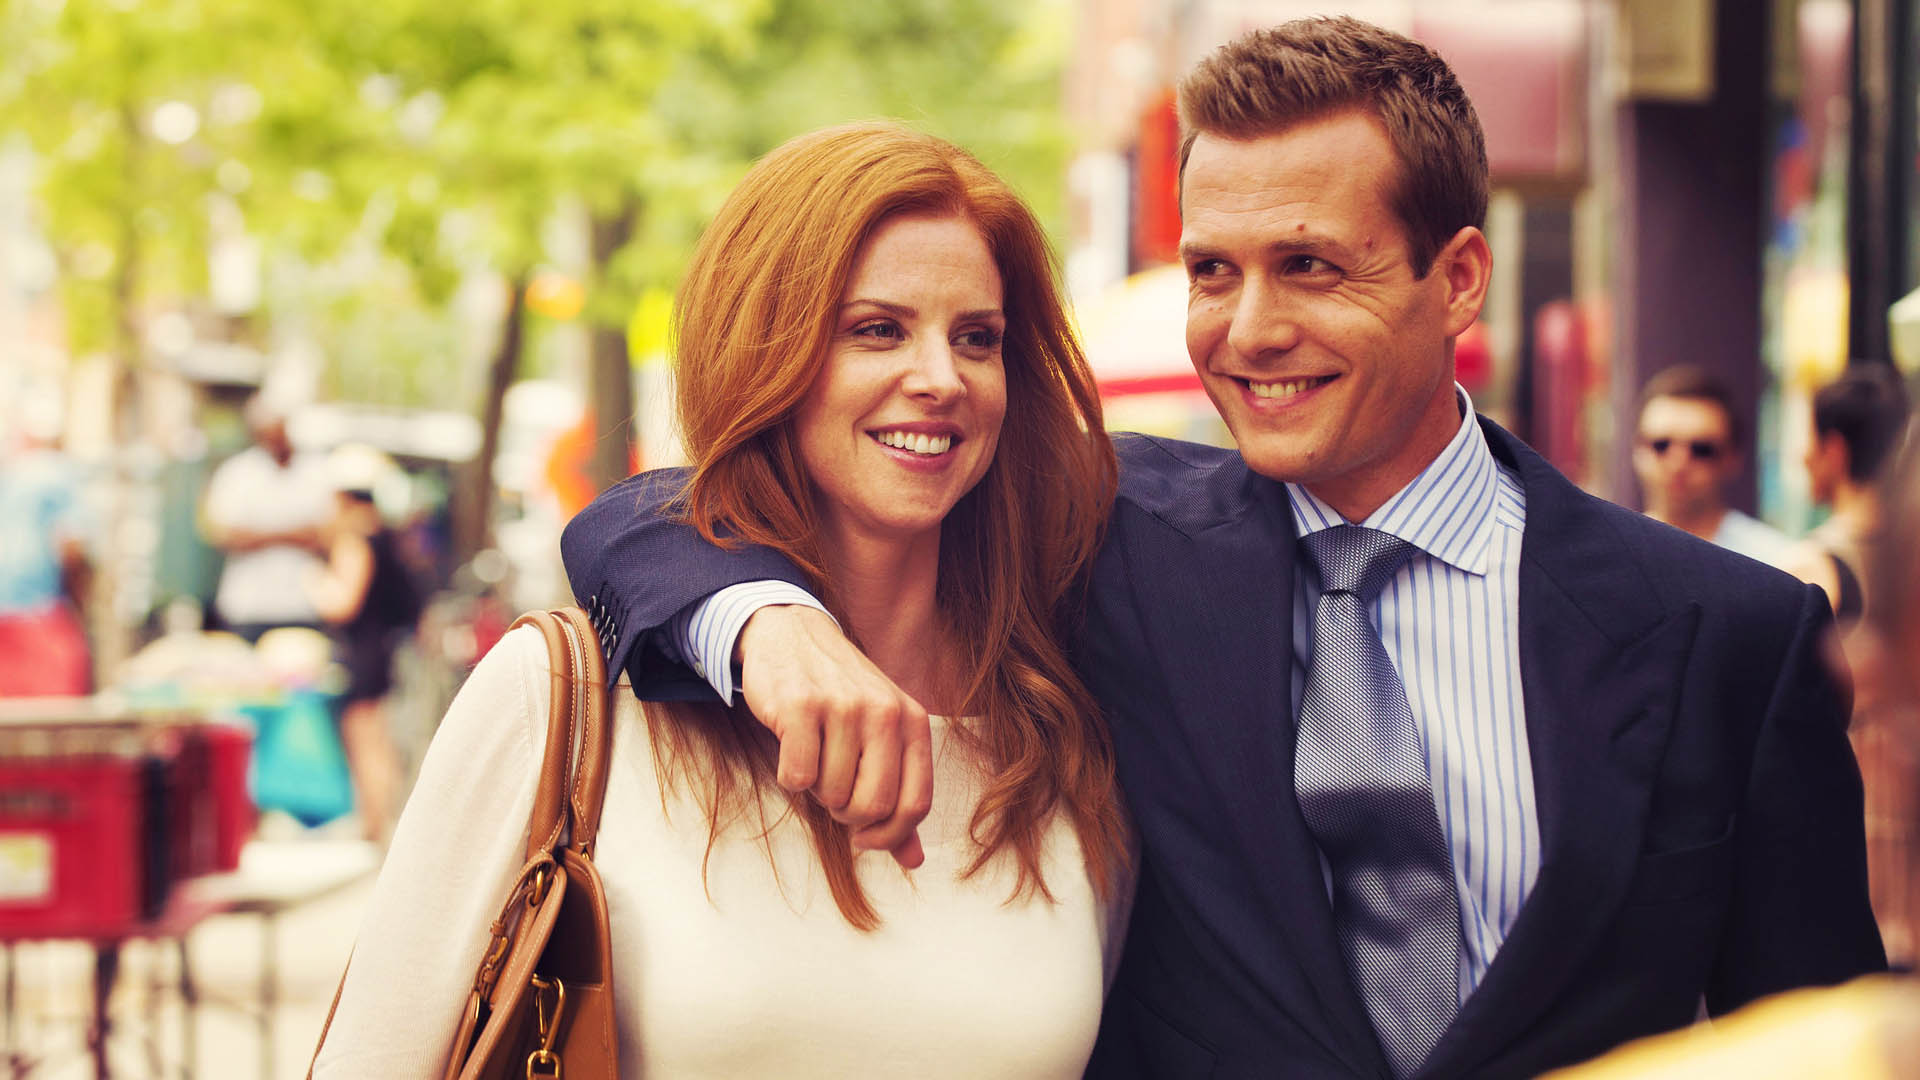 http://images6.fanpop.com/image/photos/38500000/Donna-and-Harvey-suits-38582725-1920-1080.jpg